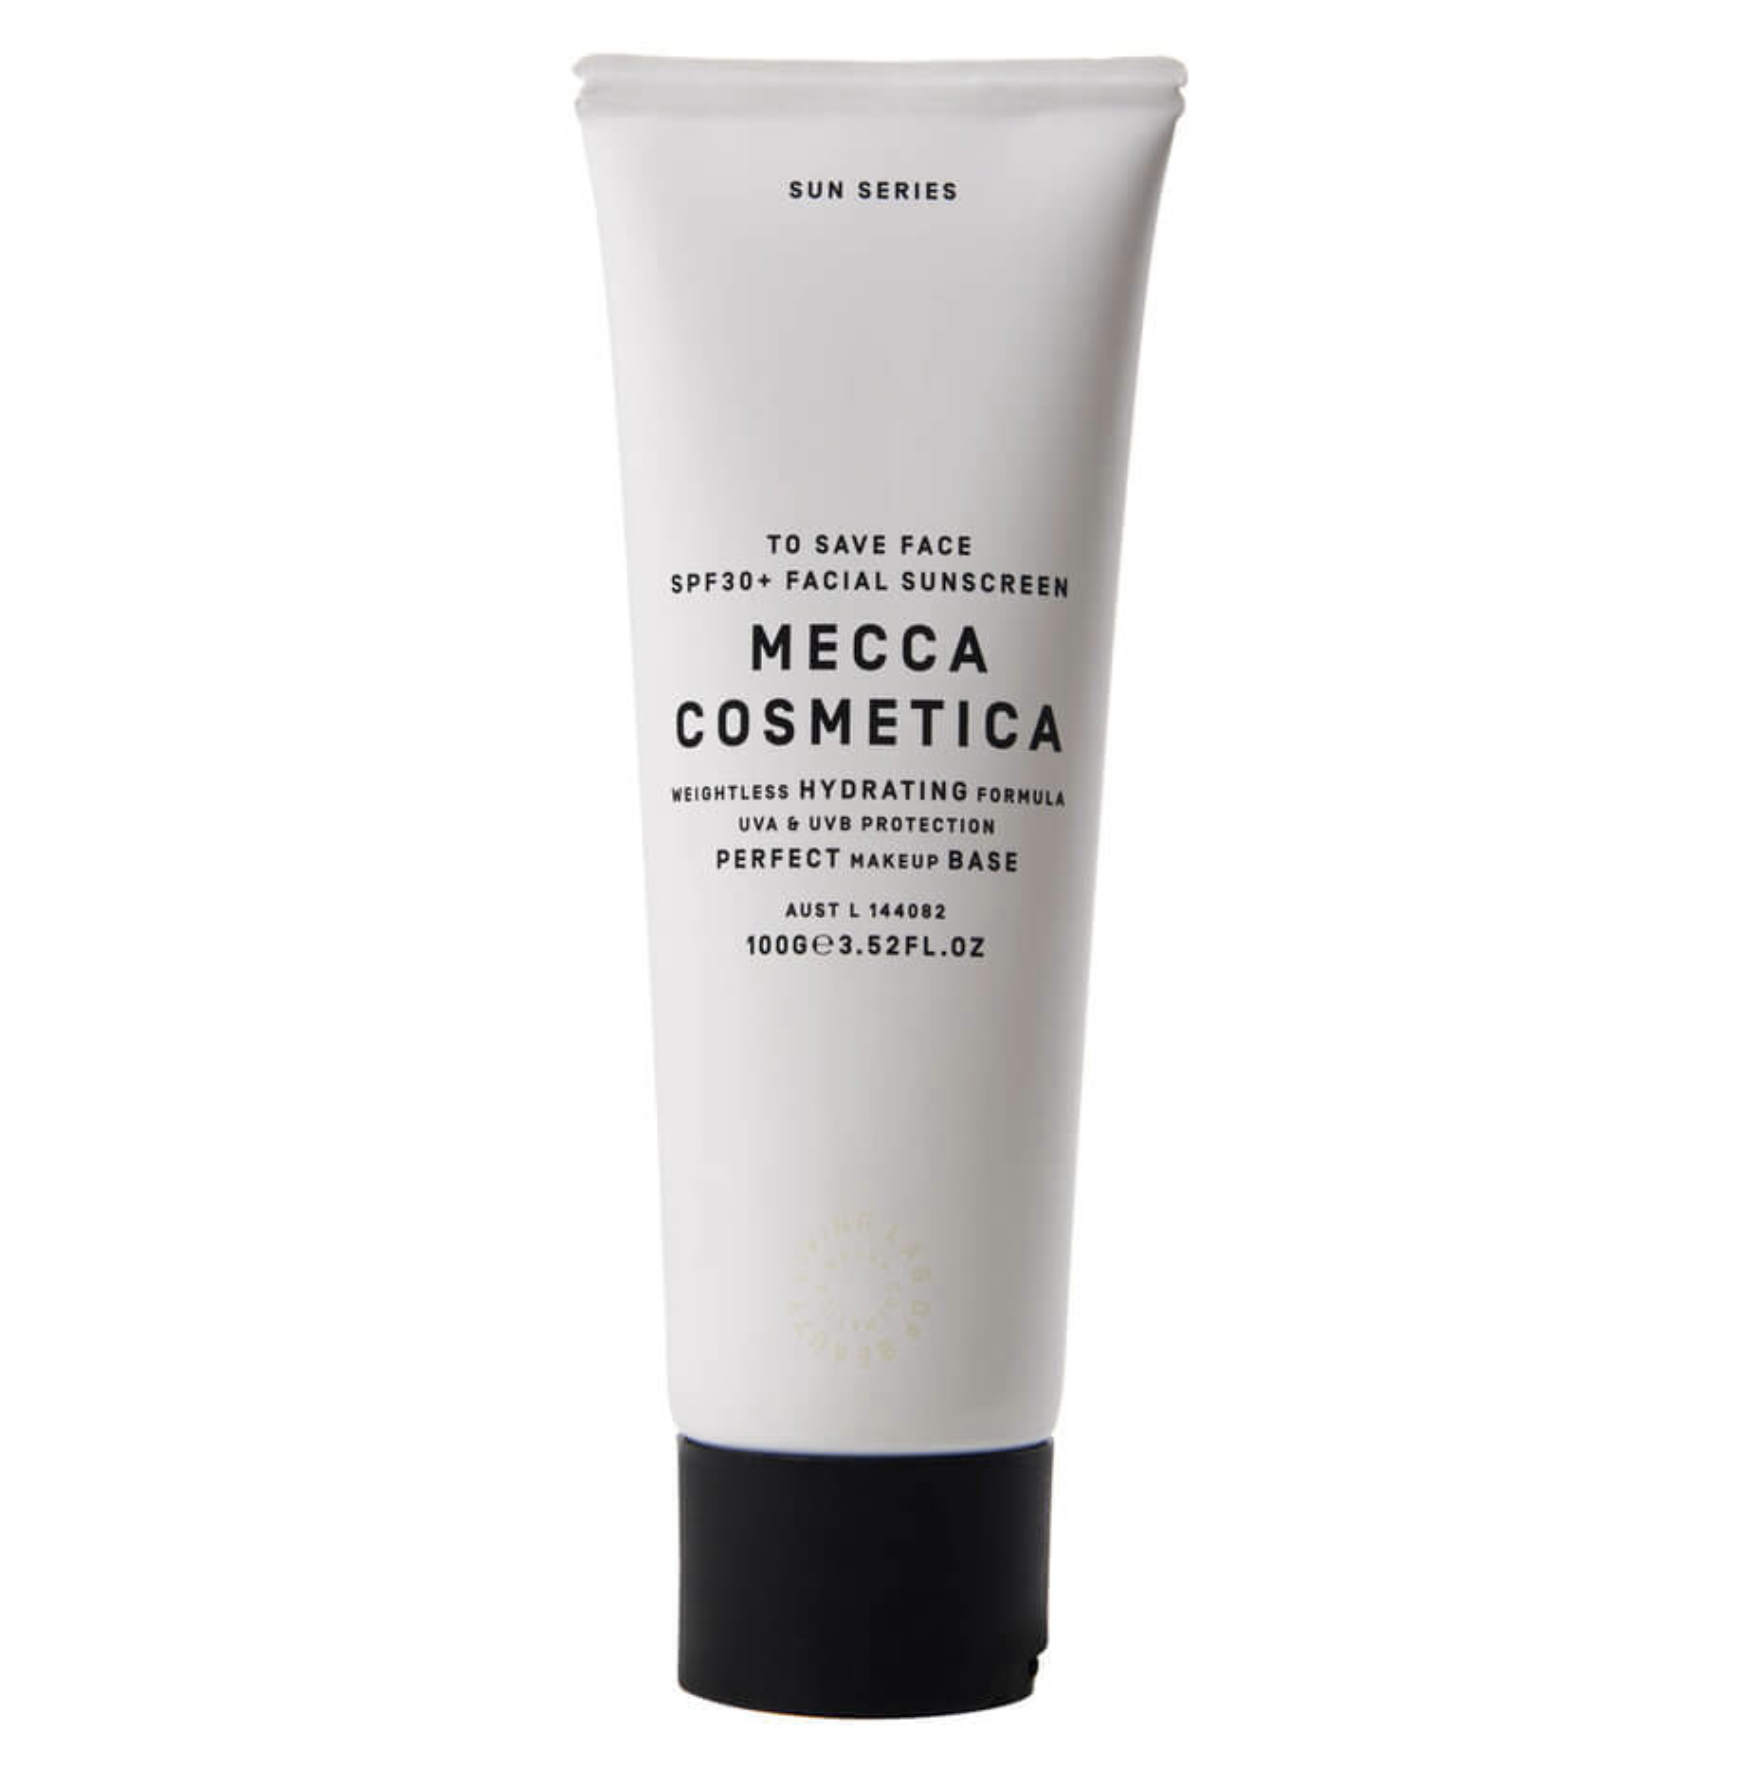 mecca spf 30.png